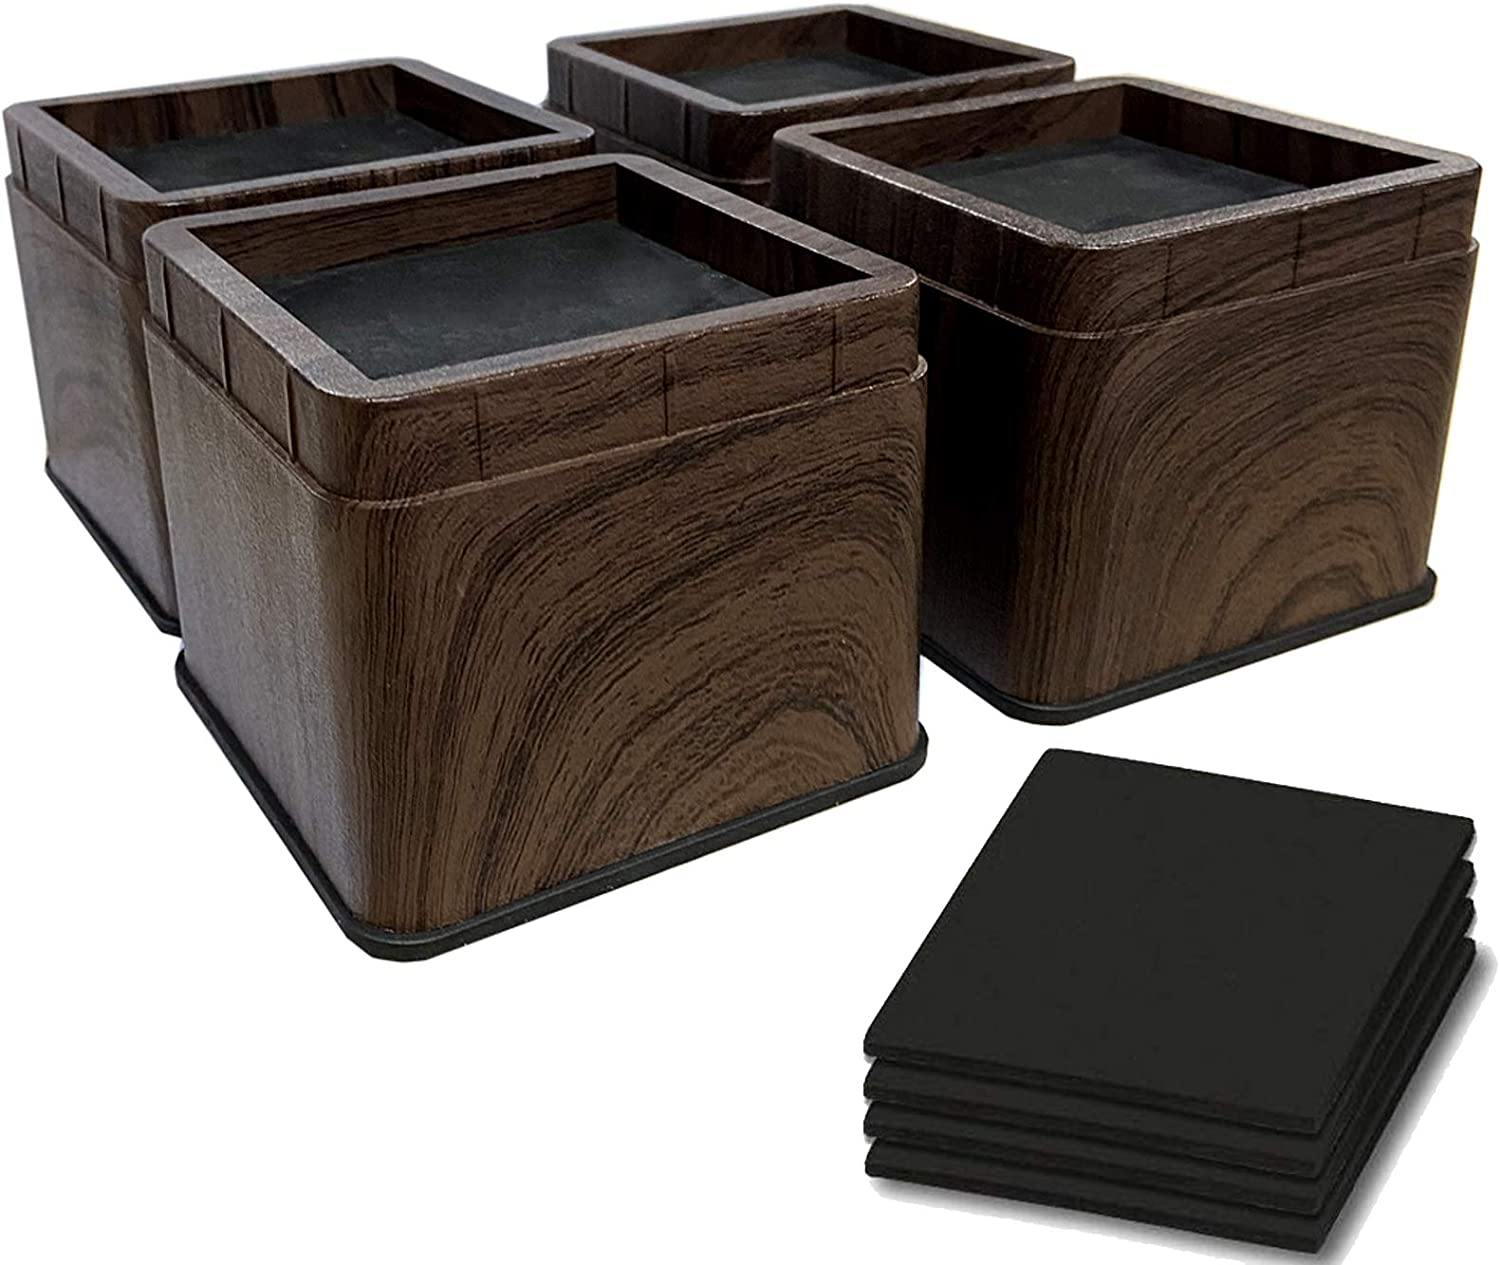 ANDEAL 3 Inch Bed Riser Heavy Duty Furniture Risers Stackable for Couch Sofa Dorm Bed Chair Table (Black Walnut Wood Grain), Set of 4